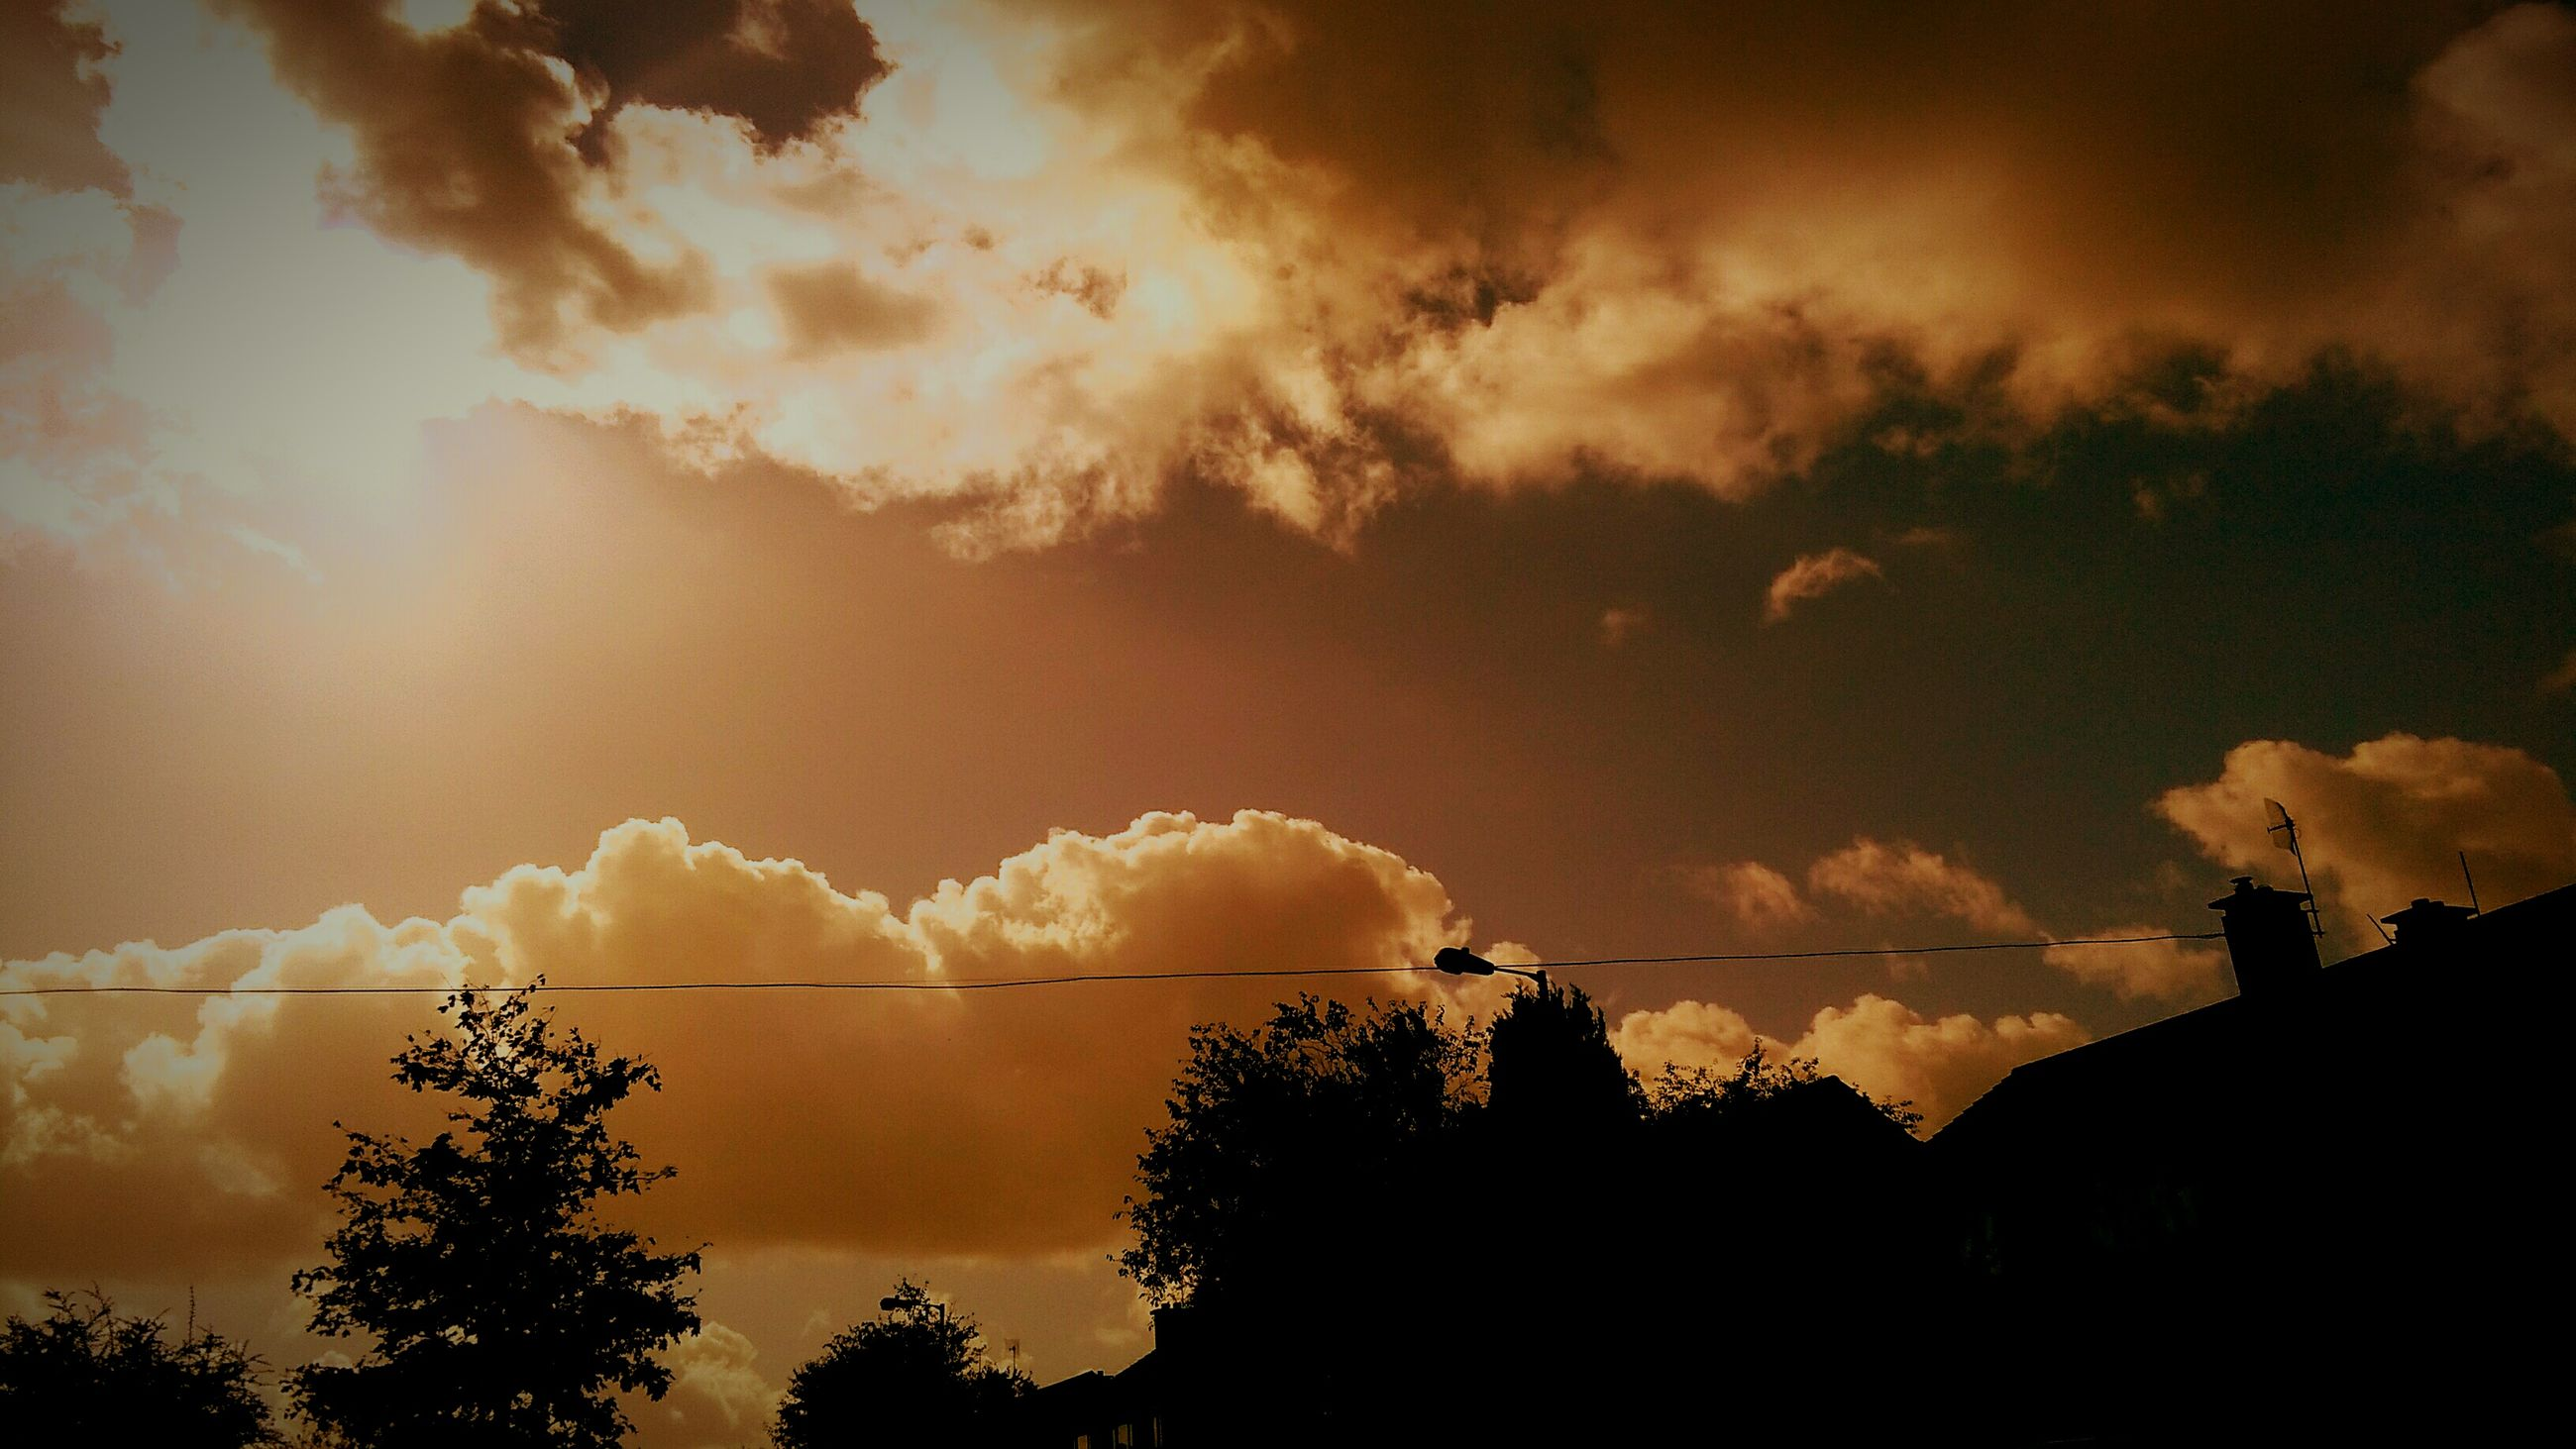 silhouette, tree, sunset, sky, scenics, cloud - sky, beauty in nature, tranquil scene, cloud, tranquility, nature, outline, cloudscape, growth, cable, power line, outdoors, day, cloudy, high section, sunbeam, solitude, dramatic sky, no people, majestic, treetop, atmospheric mood, remote, storm cloud